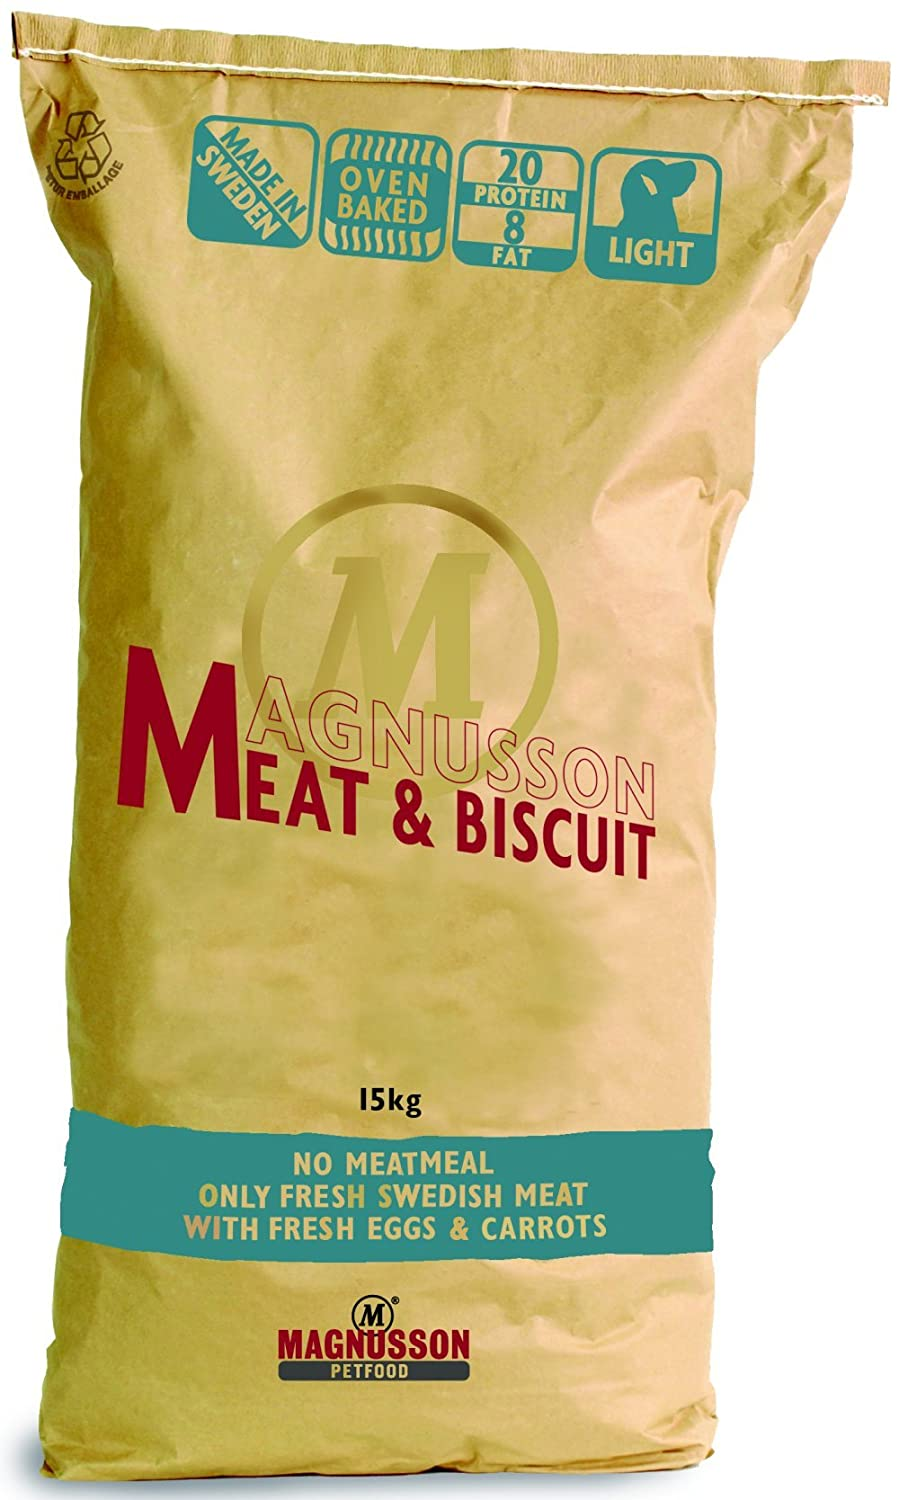 2 x 14 kg | Magnusson | Meat & Biscuit Light